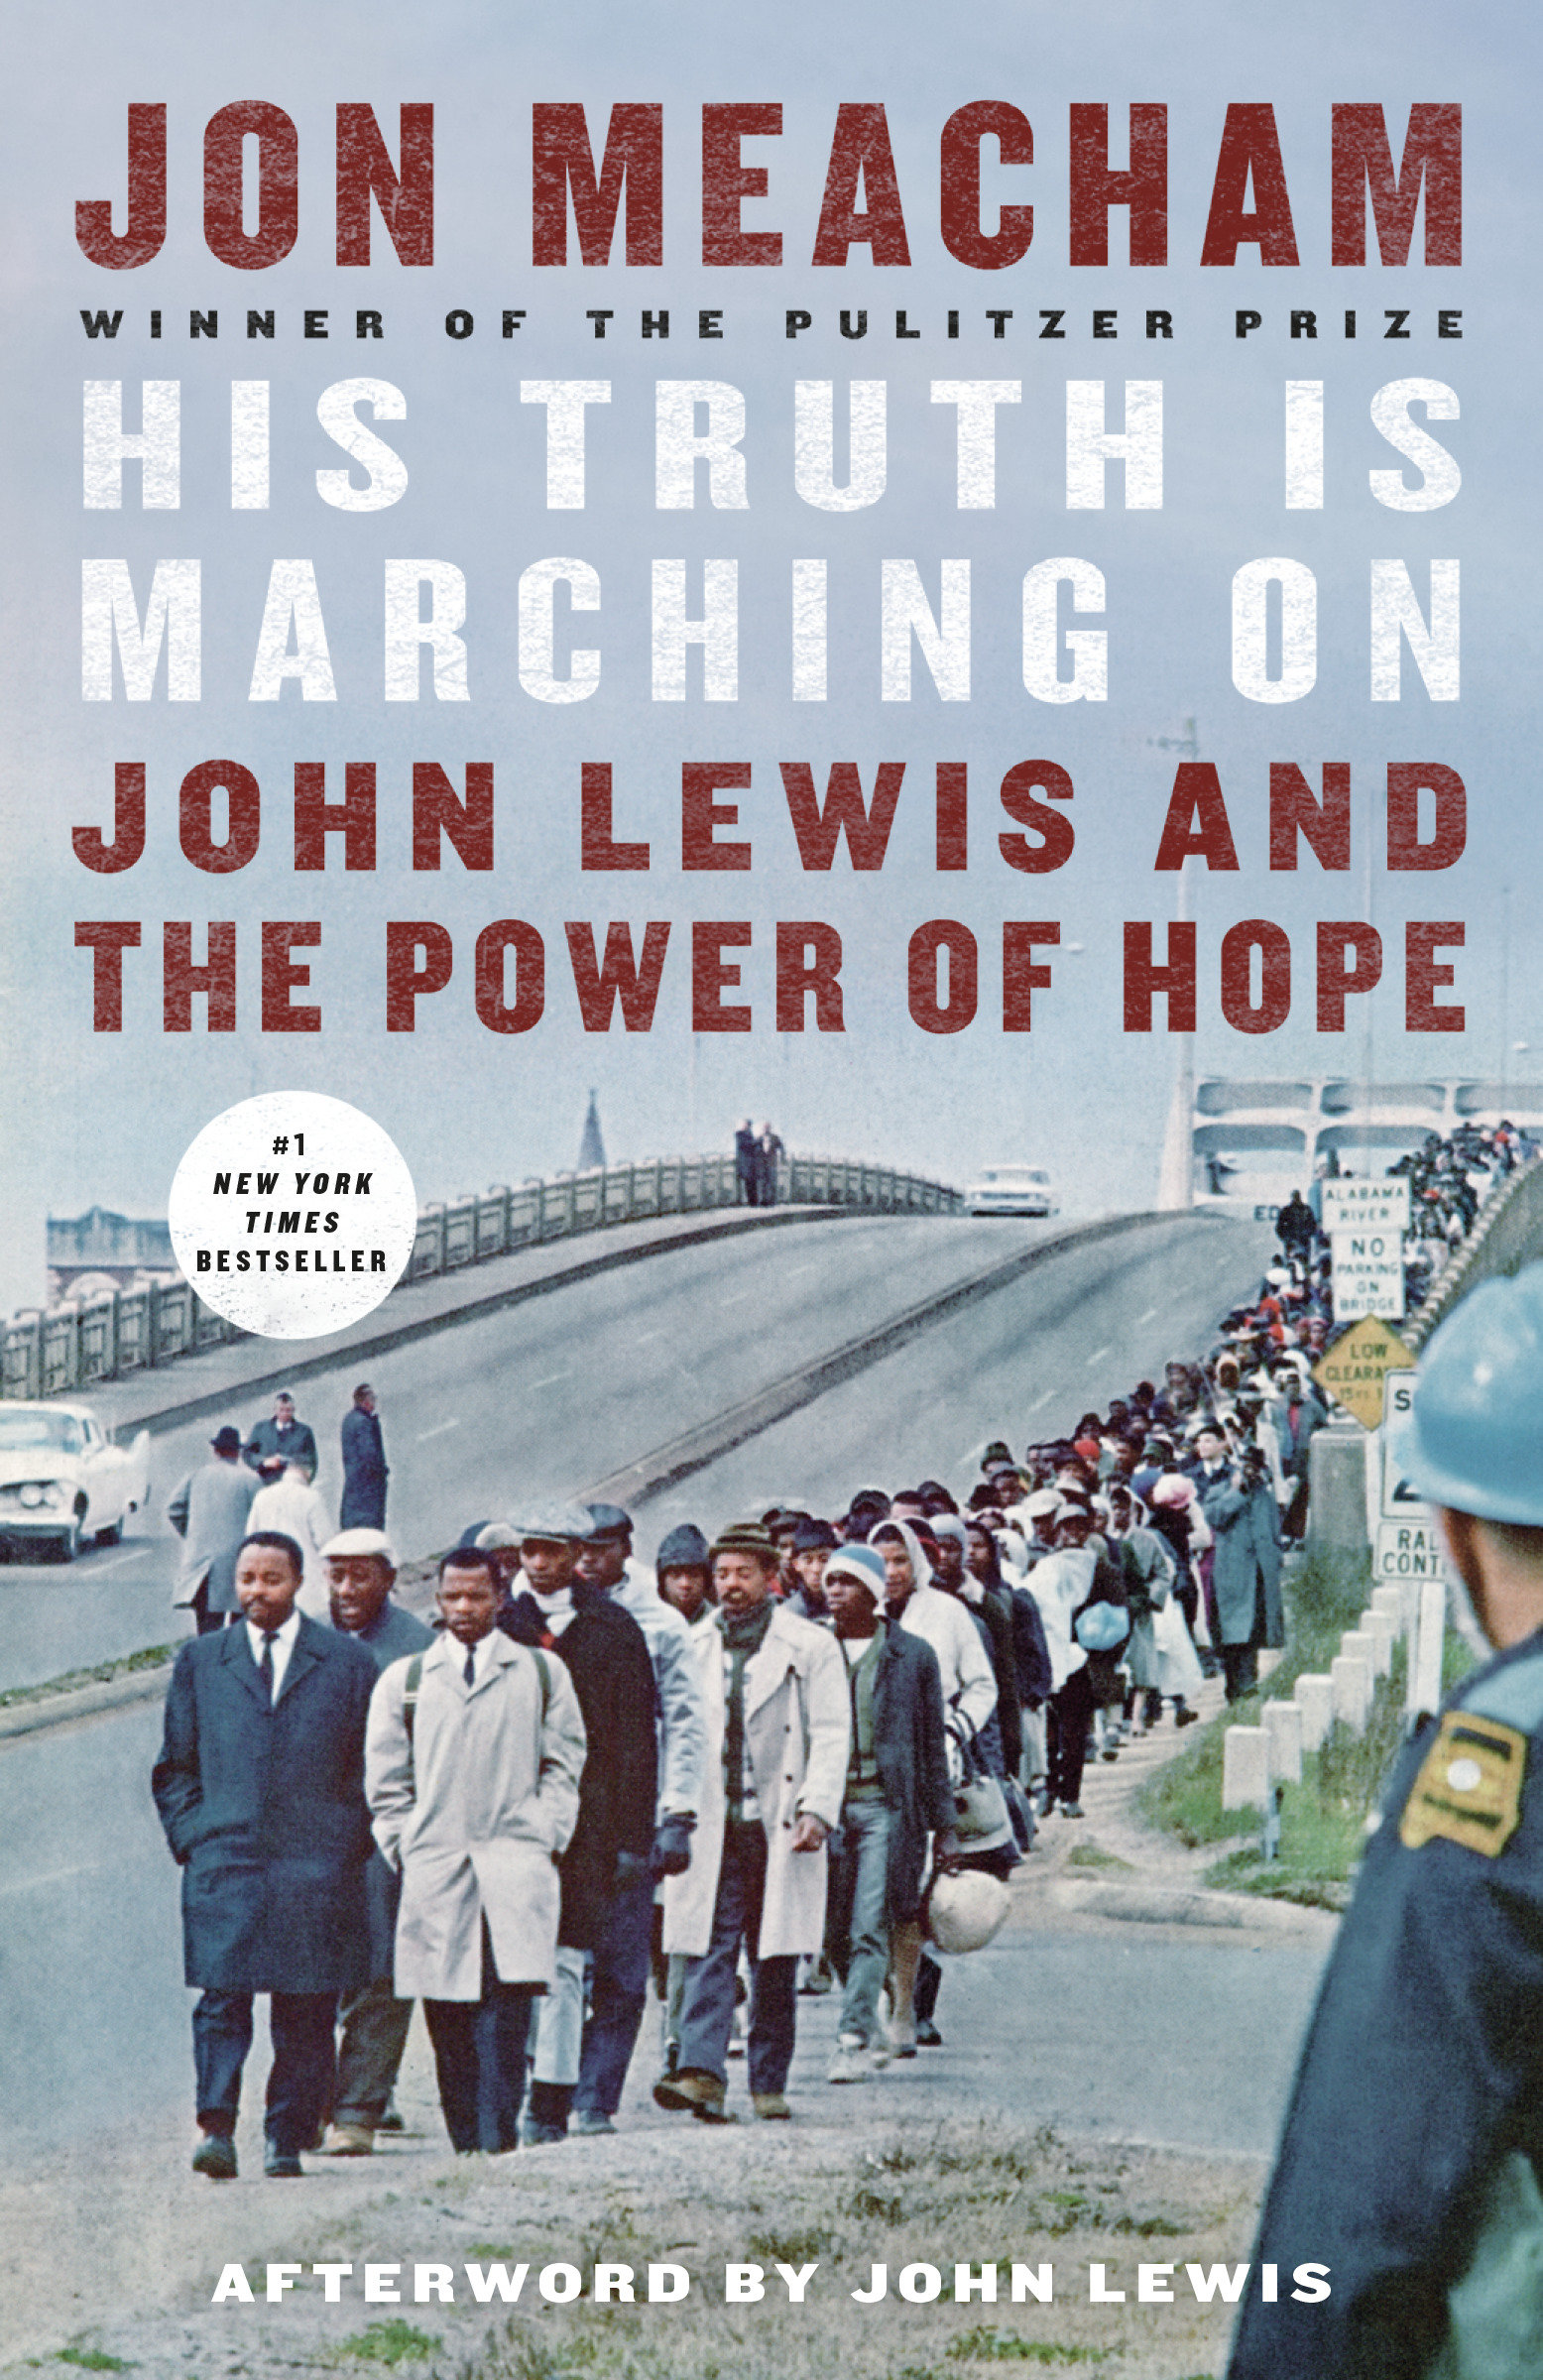 His Truth Is Marching On John Lewis and the Power of Hope